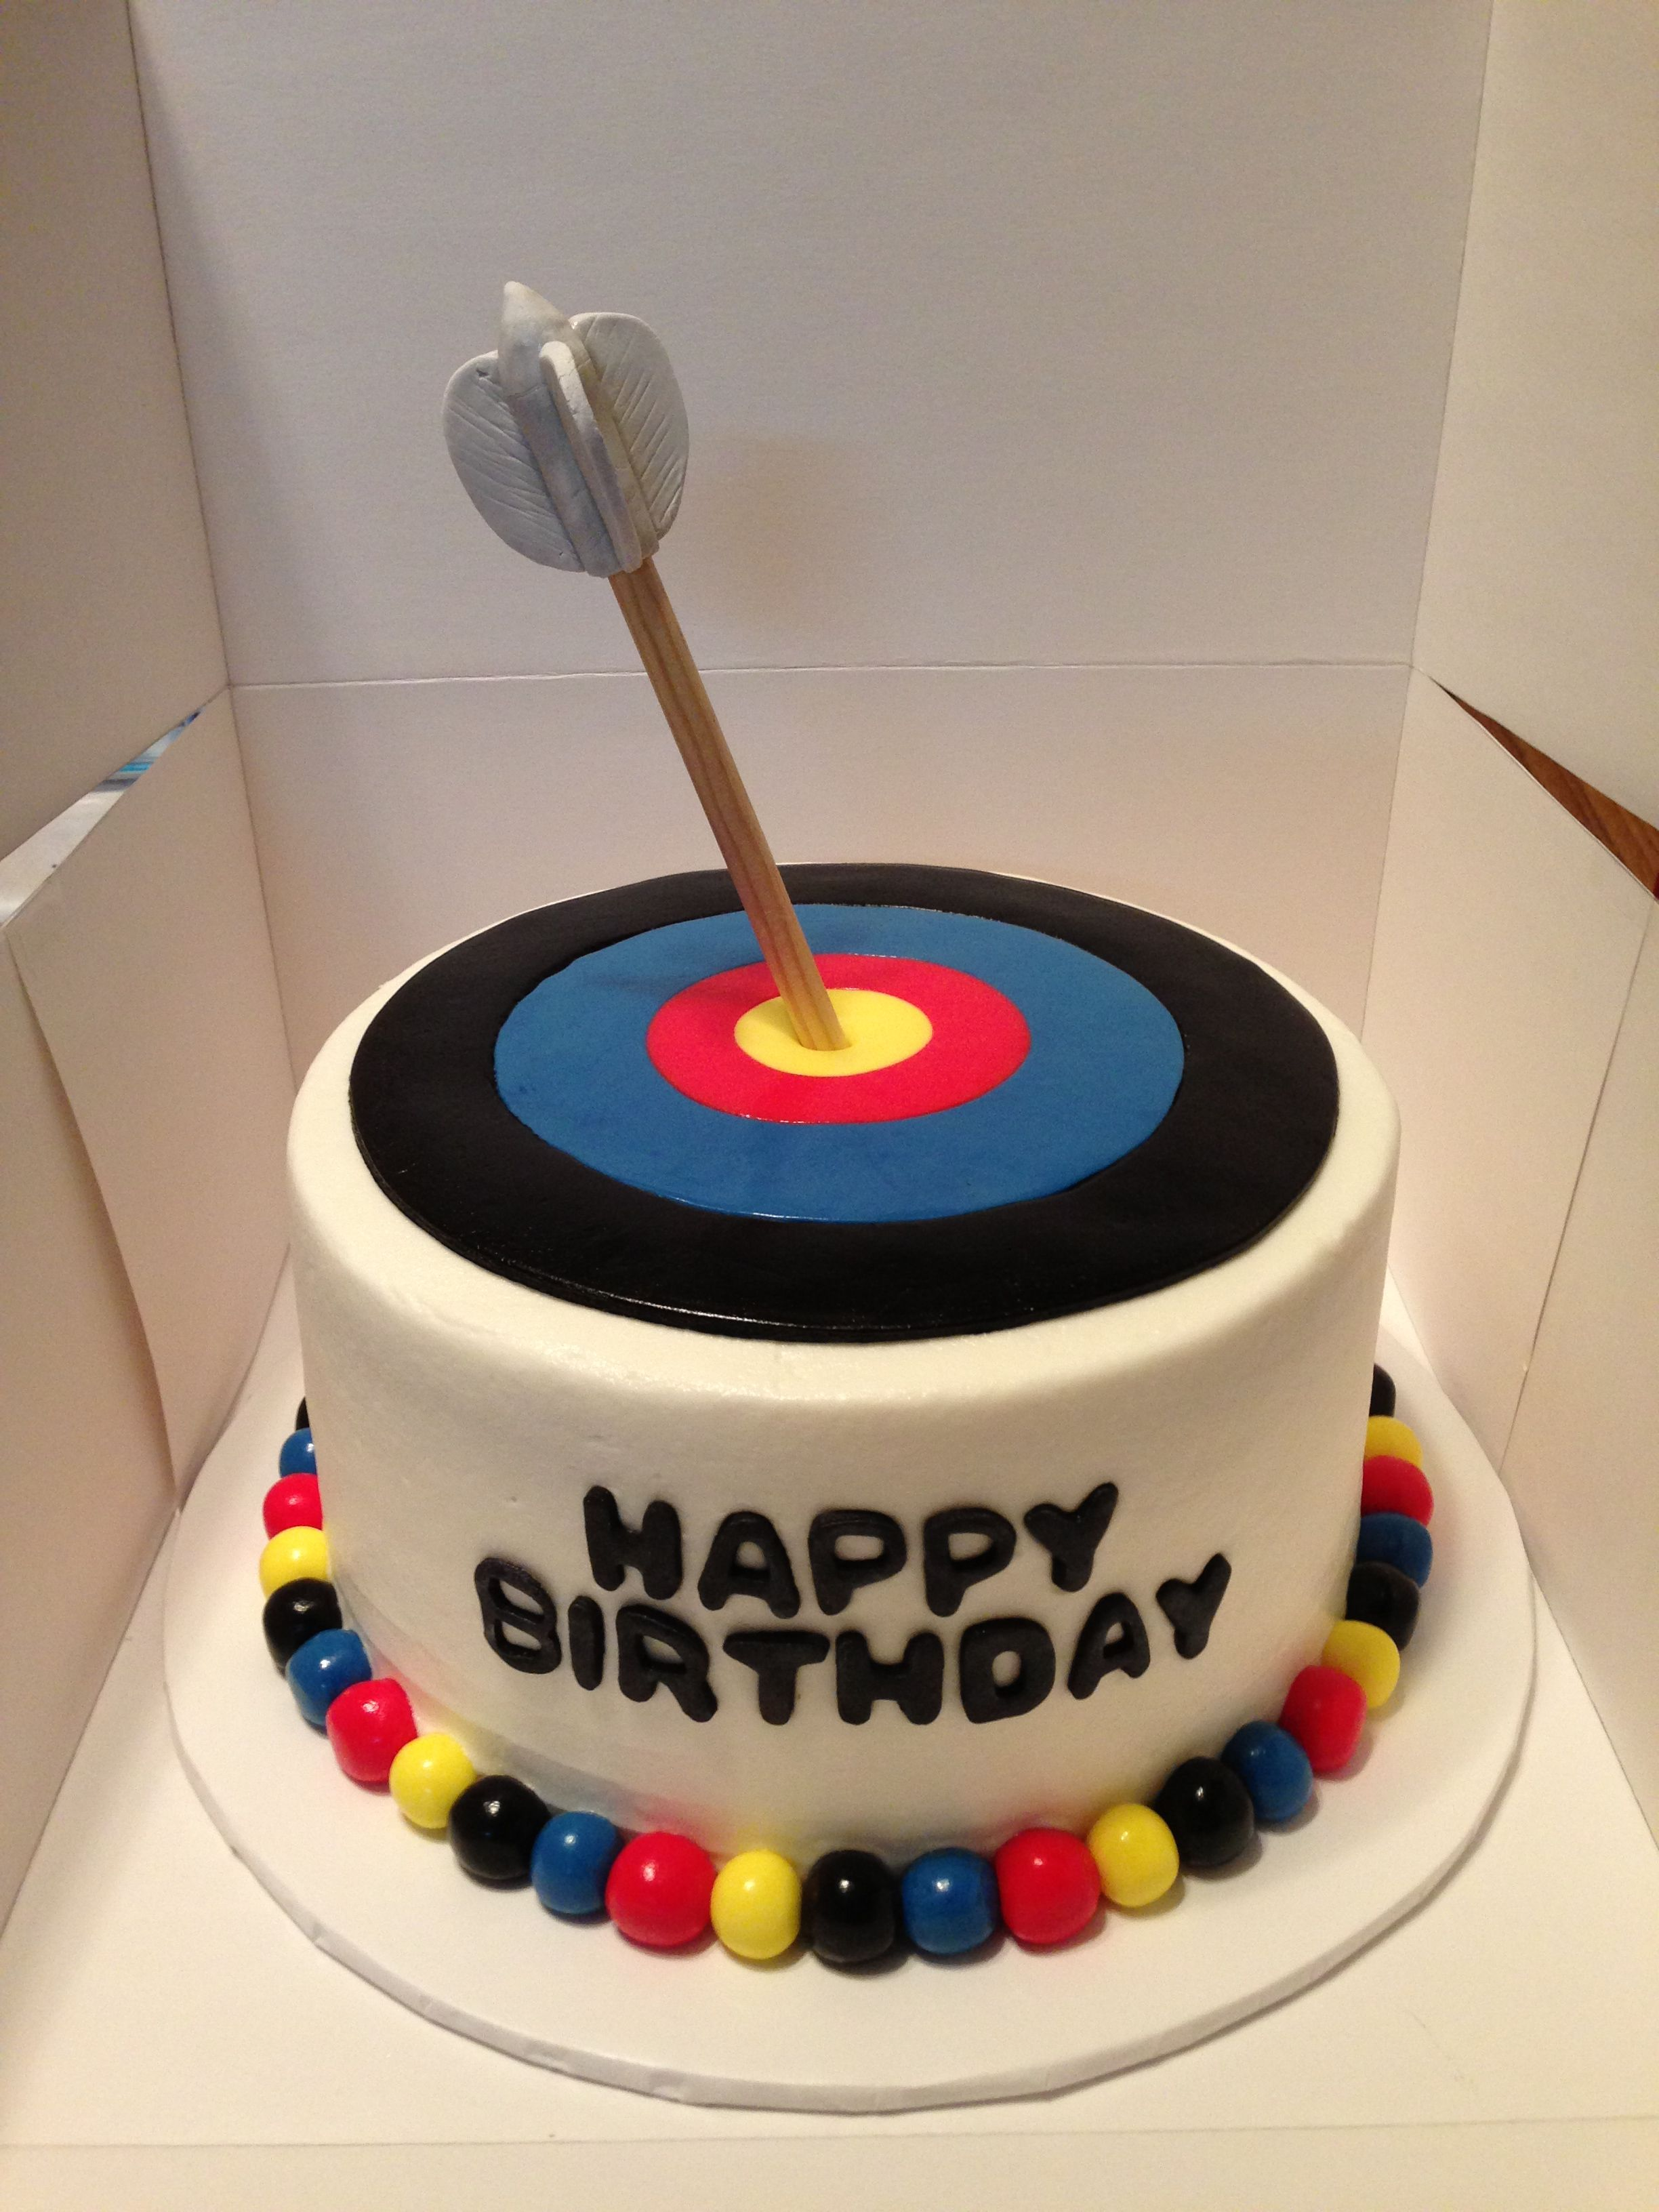 Archery Target Cake Fondant Tops An Eight Inch Arrow Made Of Wooden Dowel With Gumpaste Feathers